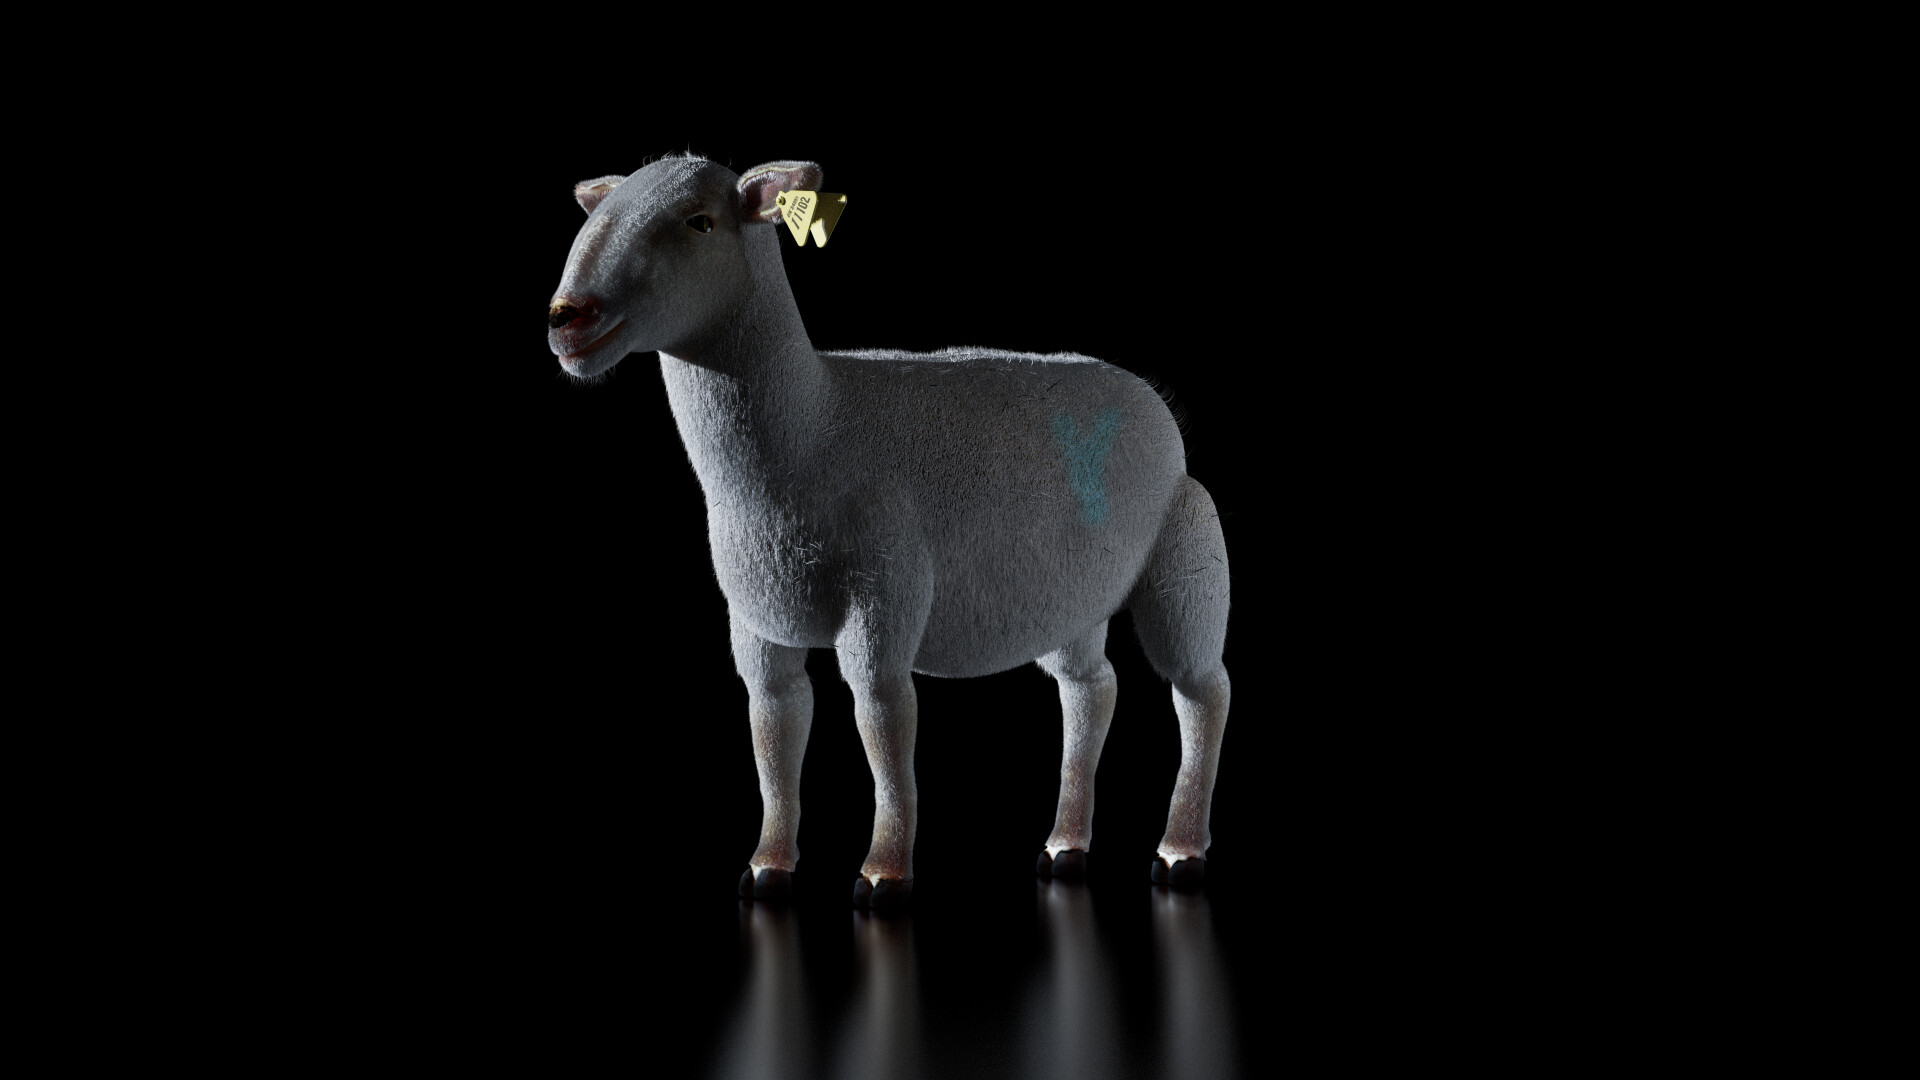 CG Sheep: quick study